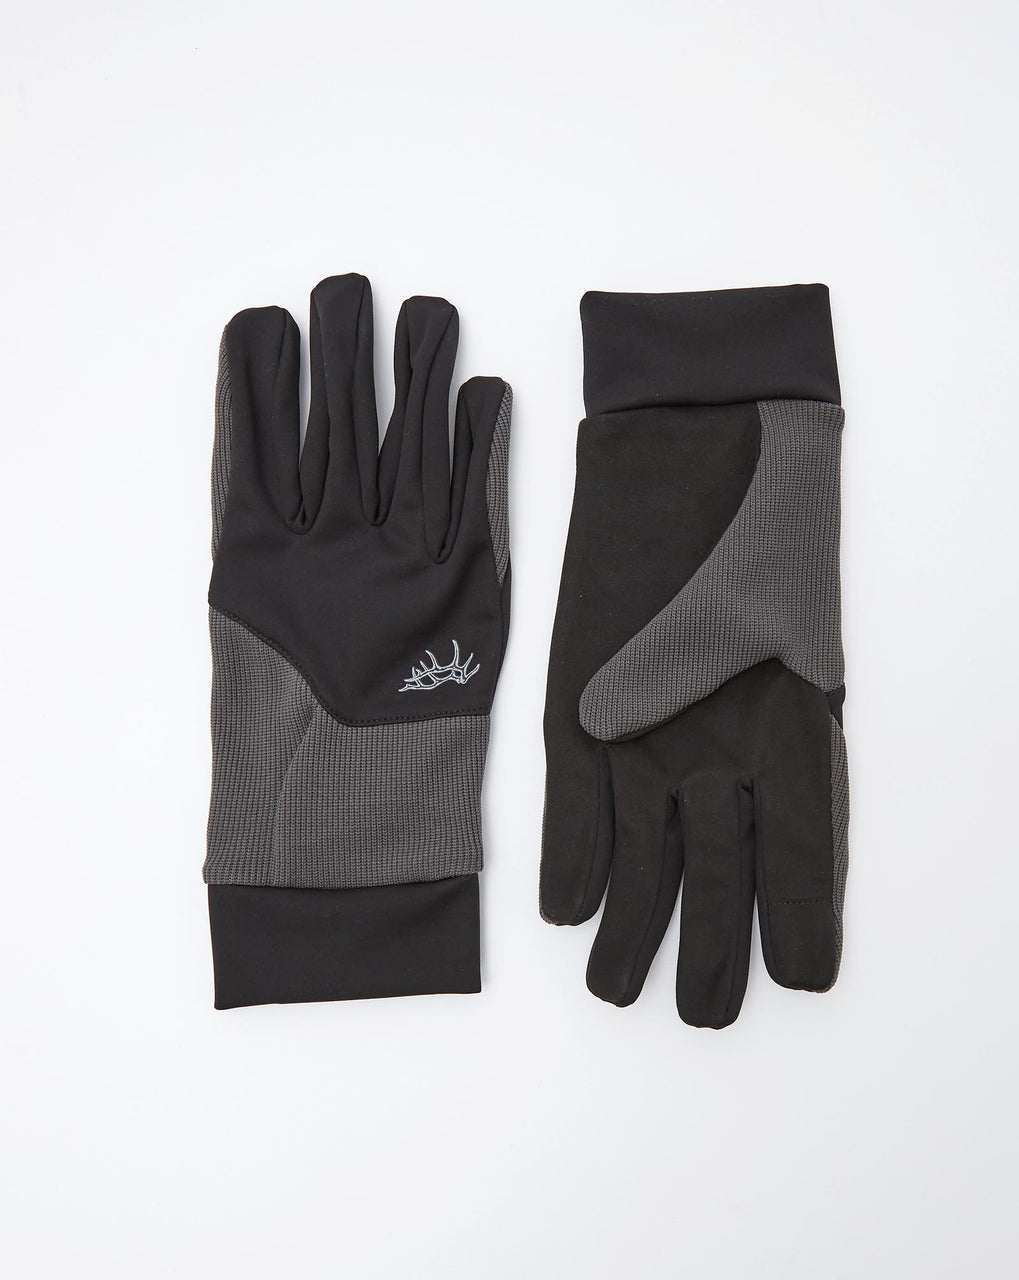 Elmer EM303 Windstopper Glove (Black/ Grey)